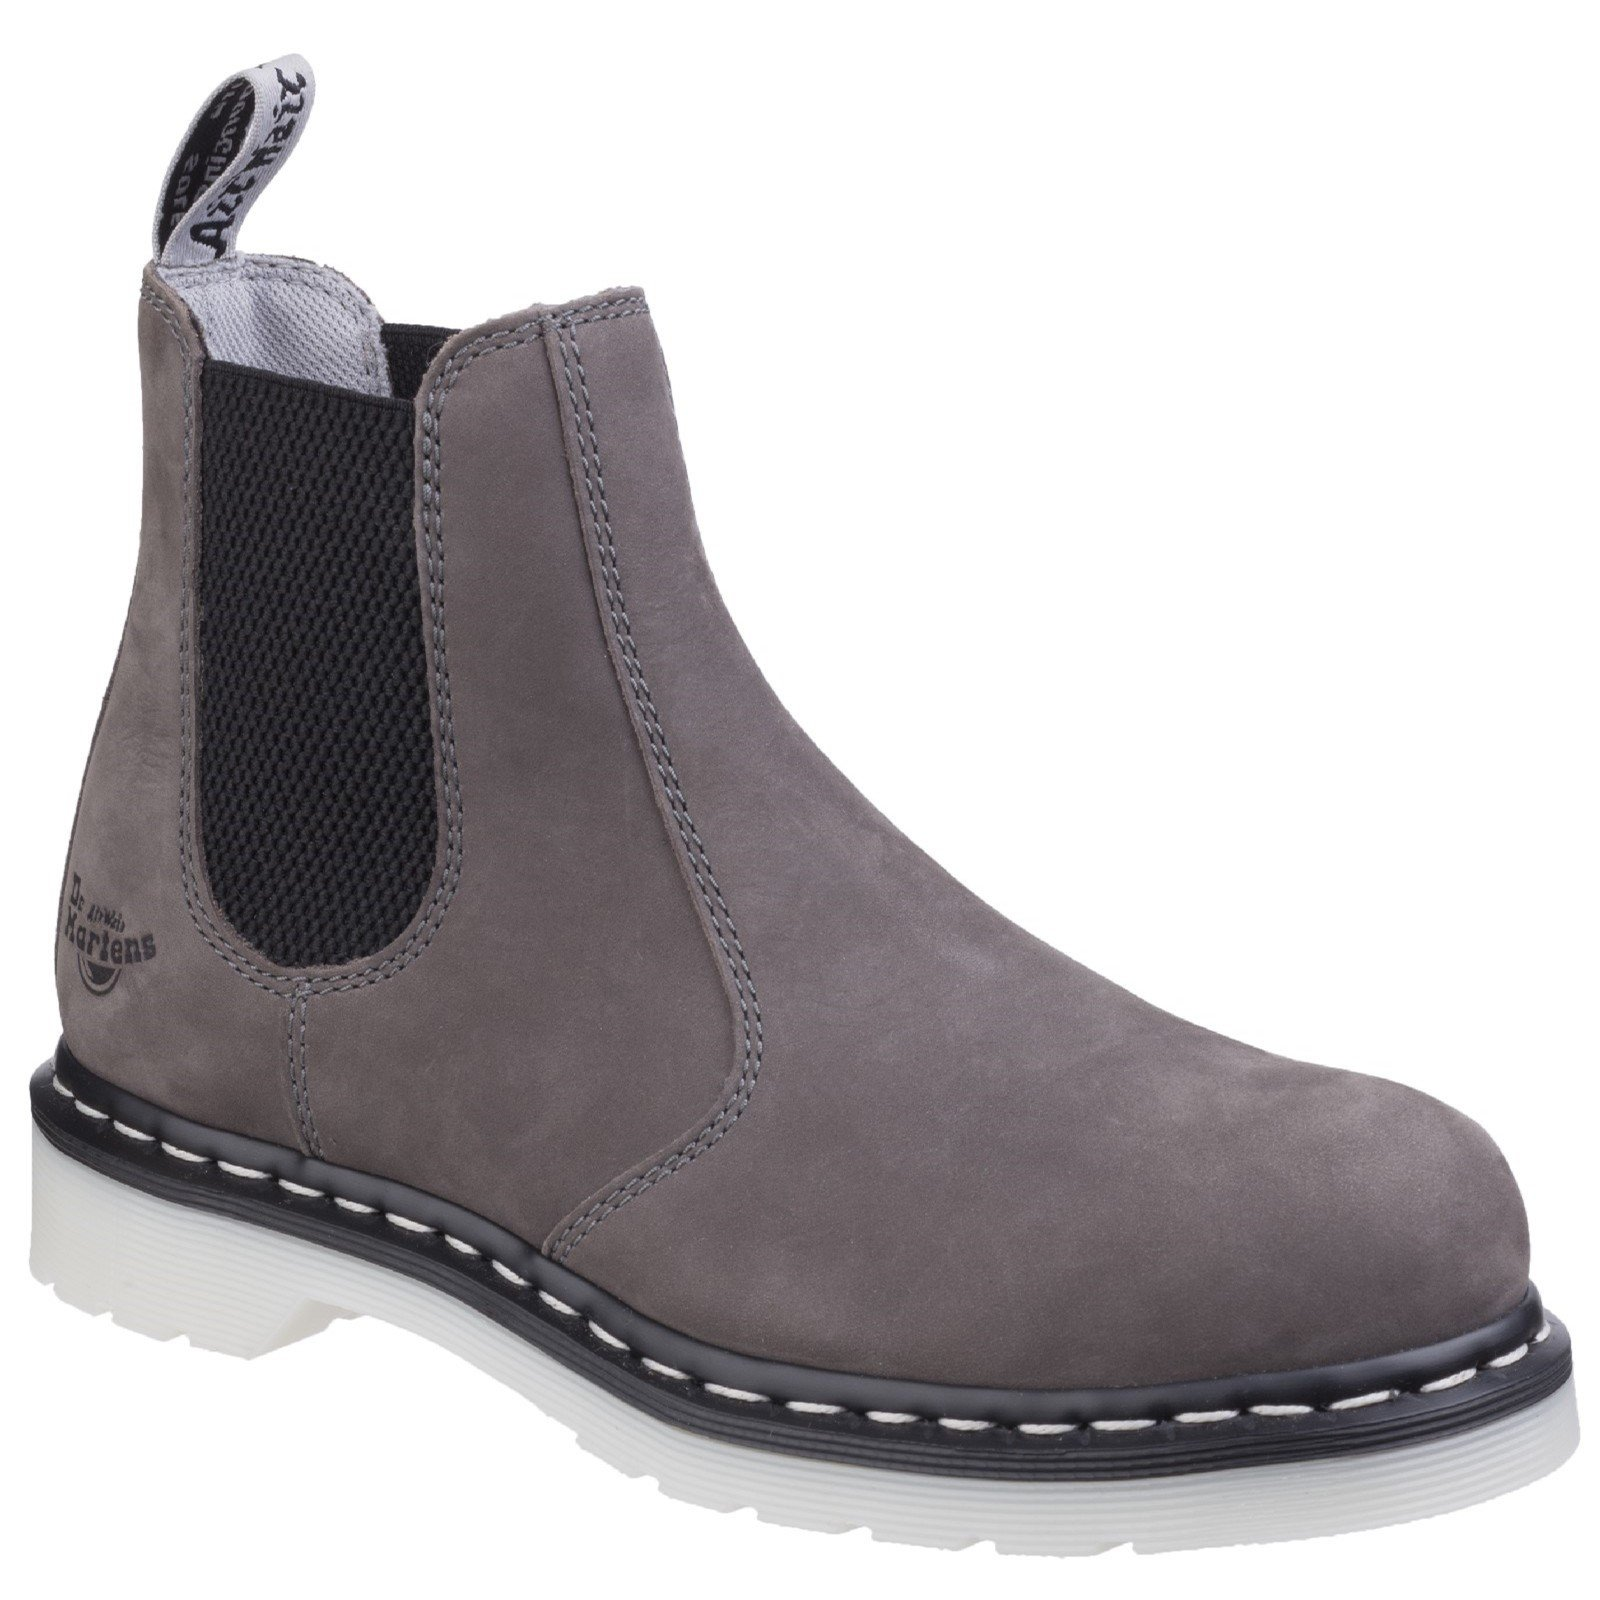 Dr Martens Women's Arbor Elastic Safety Boot Various Colours 29517 - Grey Wind River 8